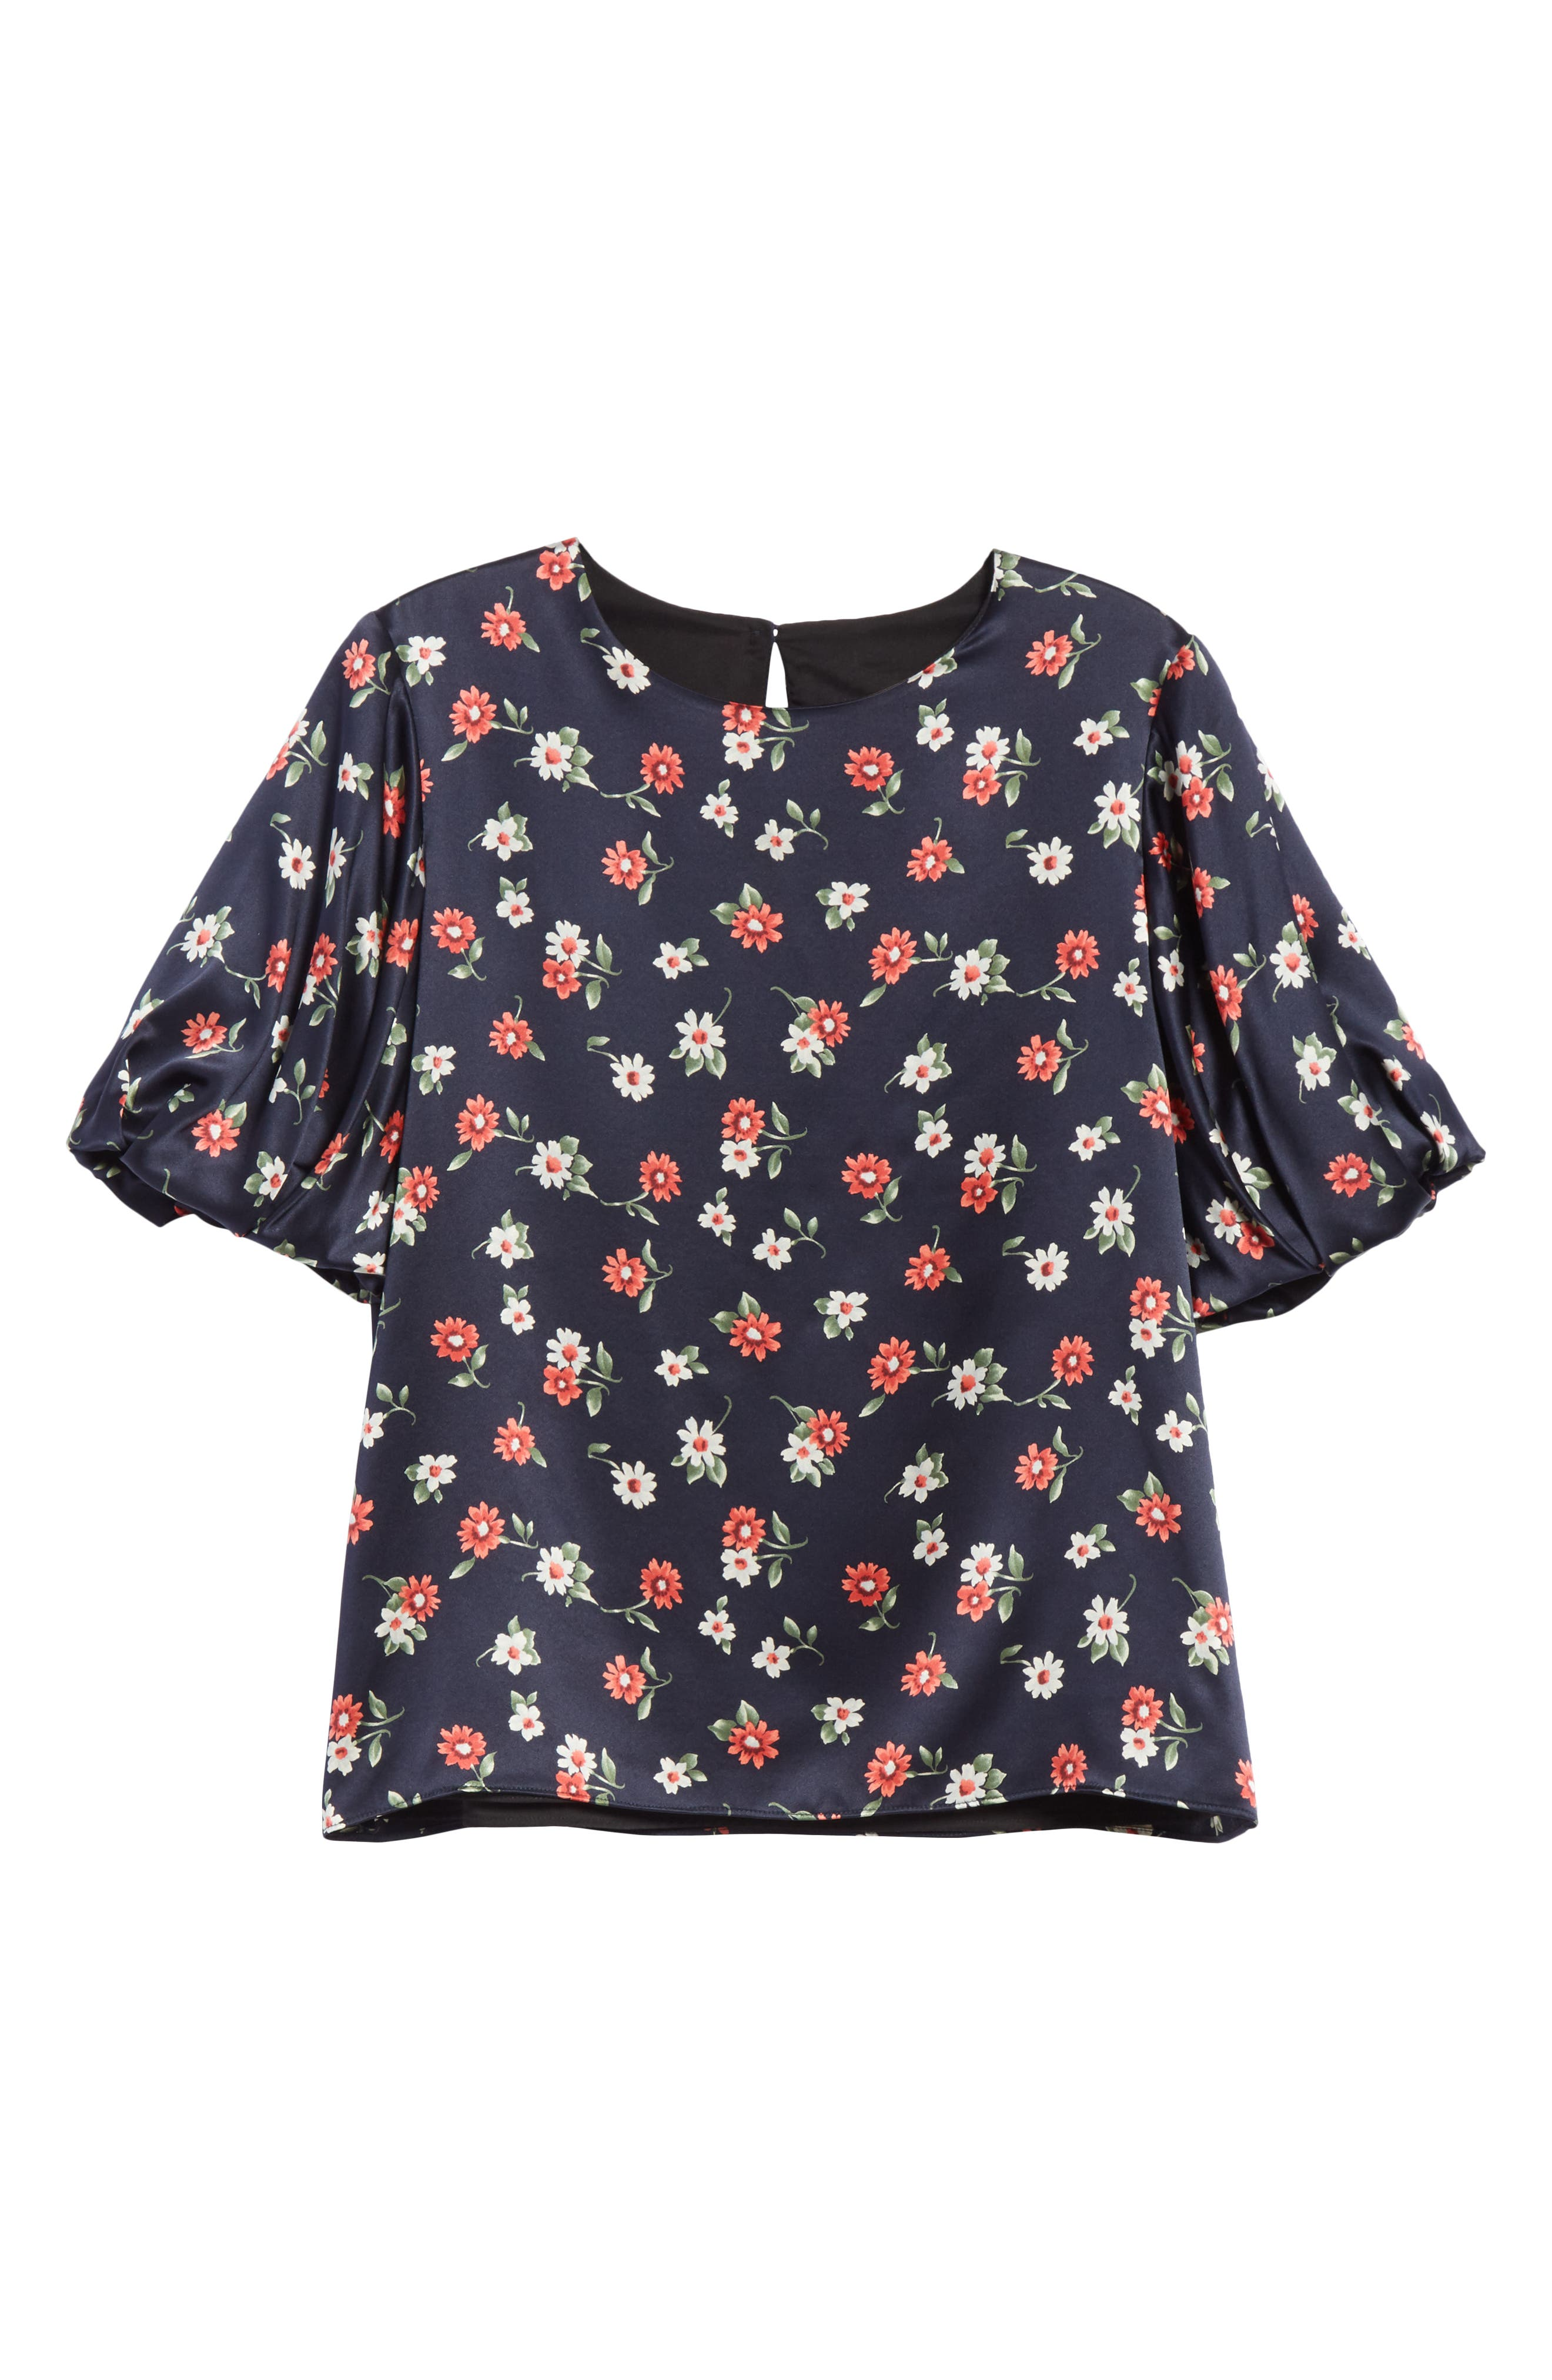 Melinda Puff Sleeve Floral Blouse,                             Alternate thumbnail 6, color,                             004